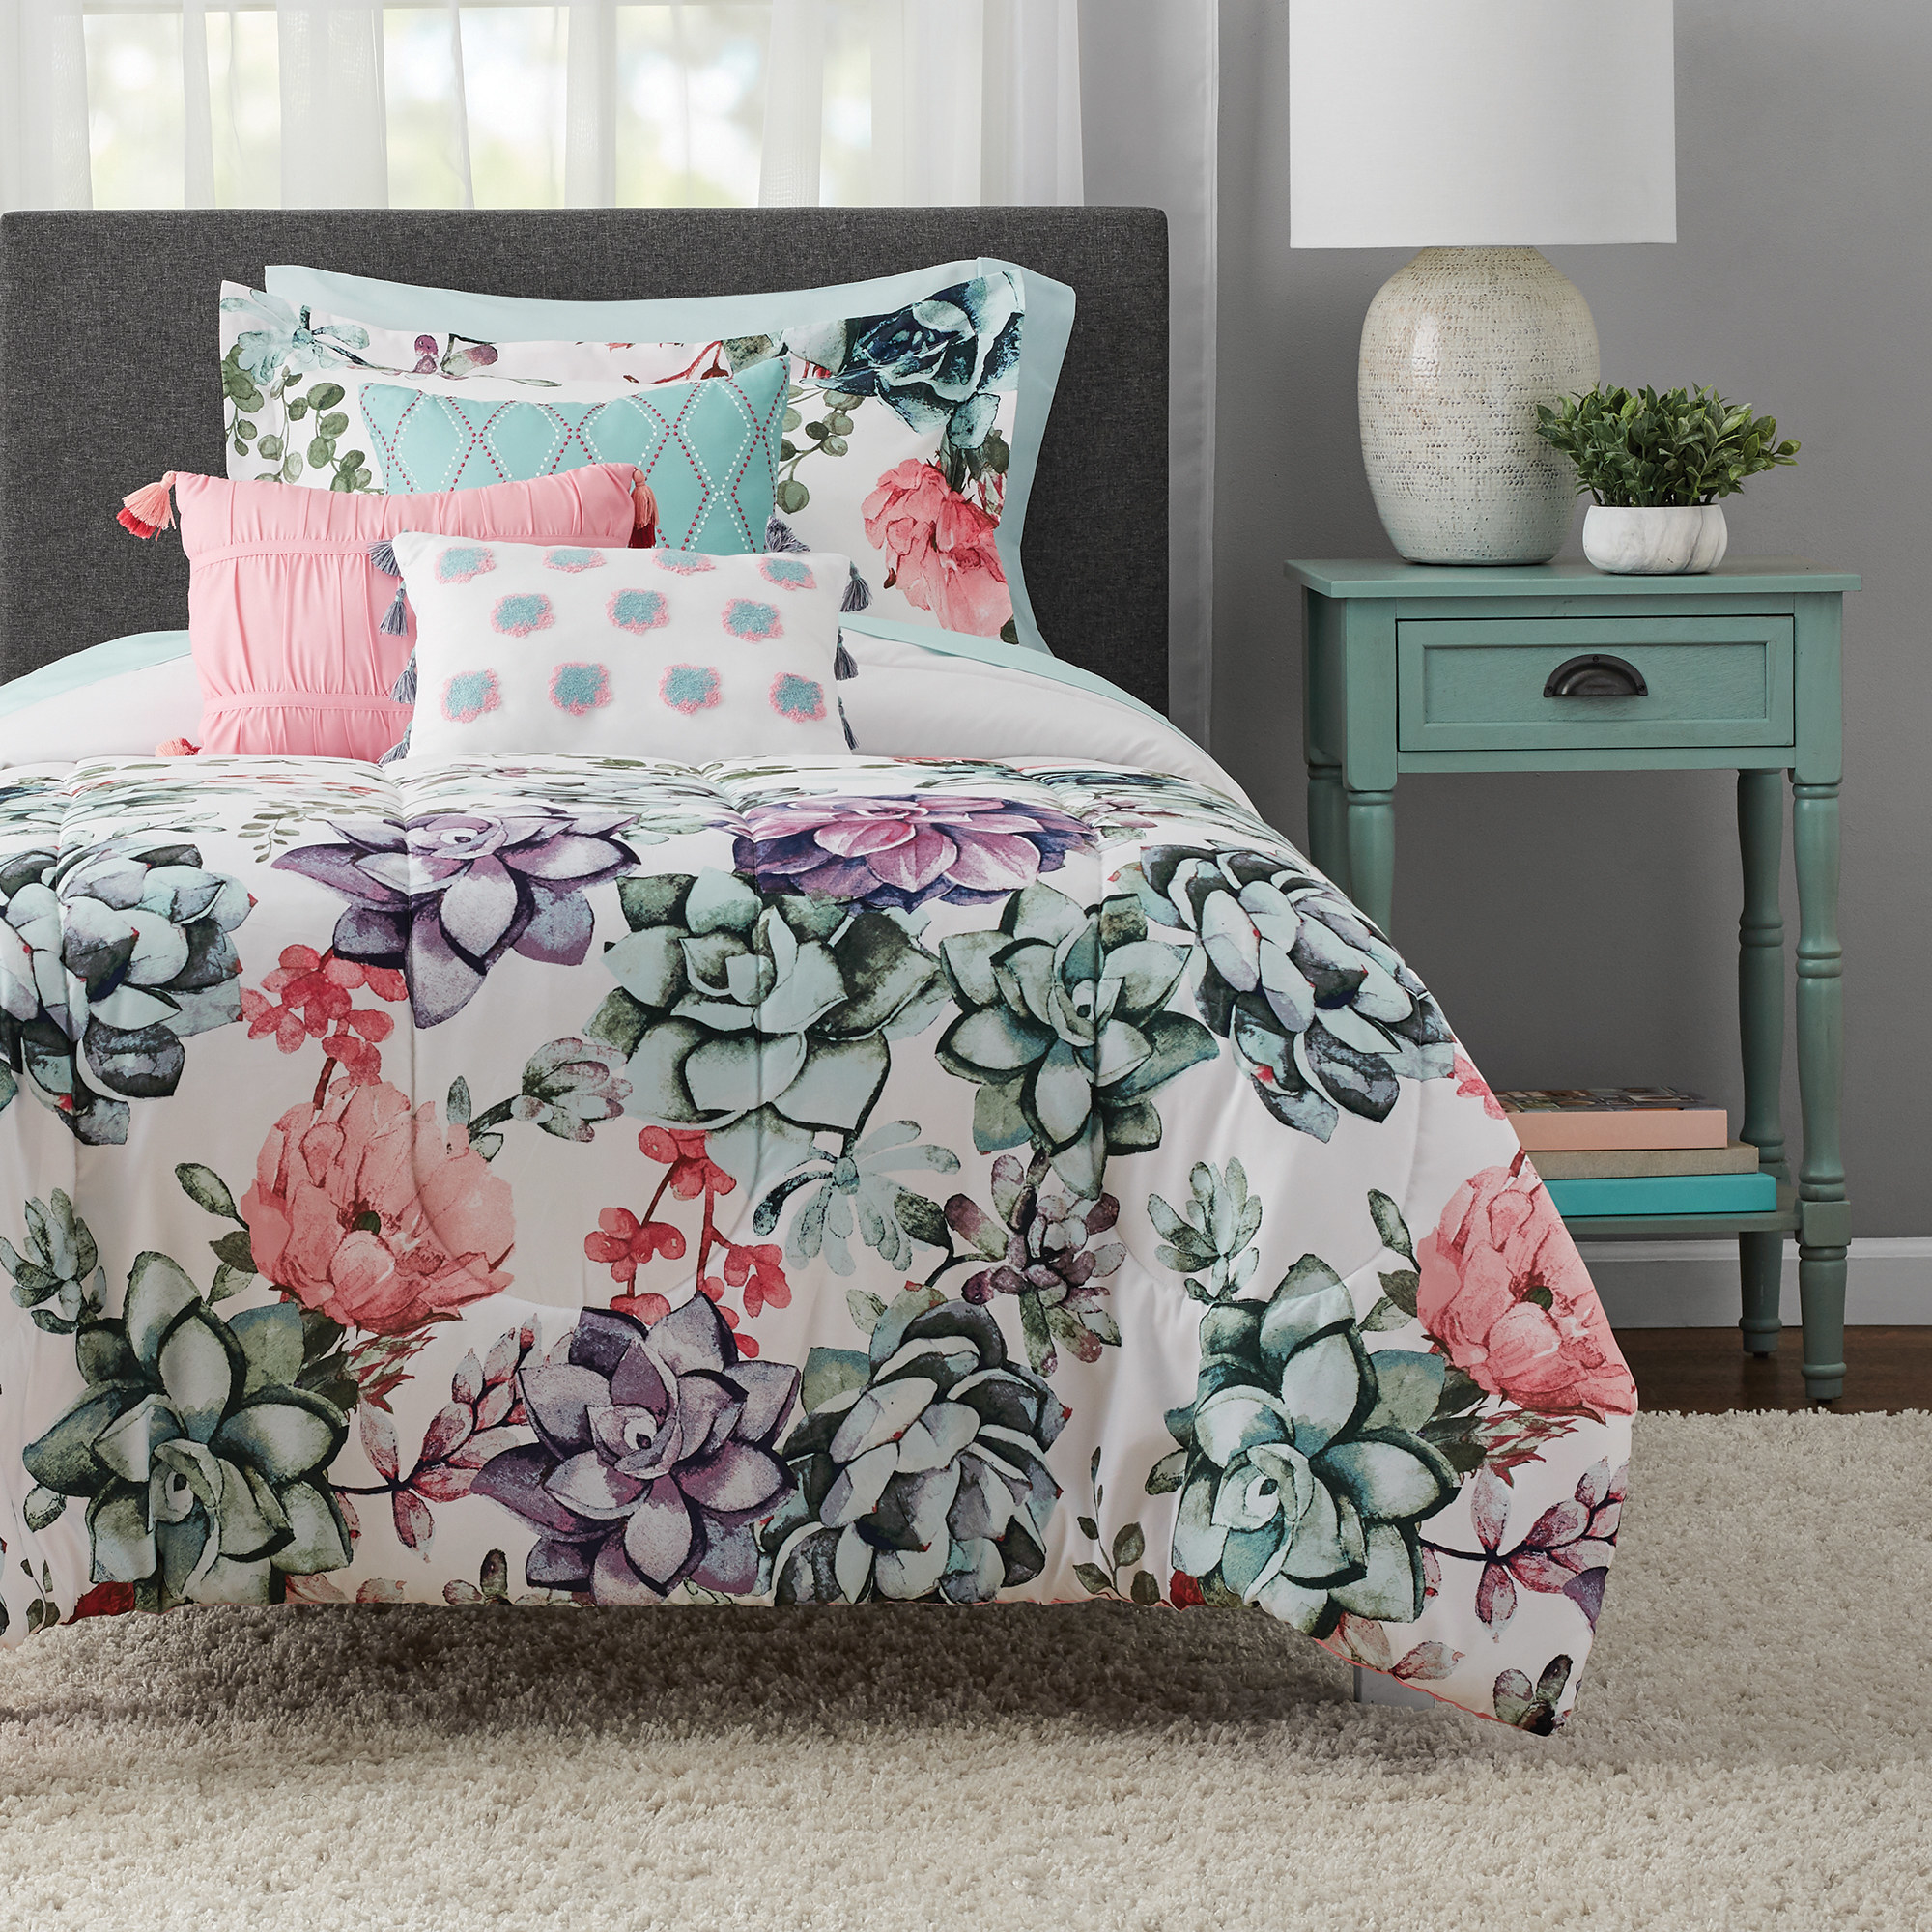 the white, pink, blue, and purple succulent bedding